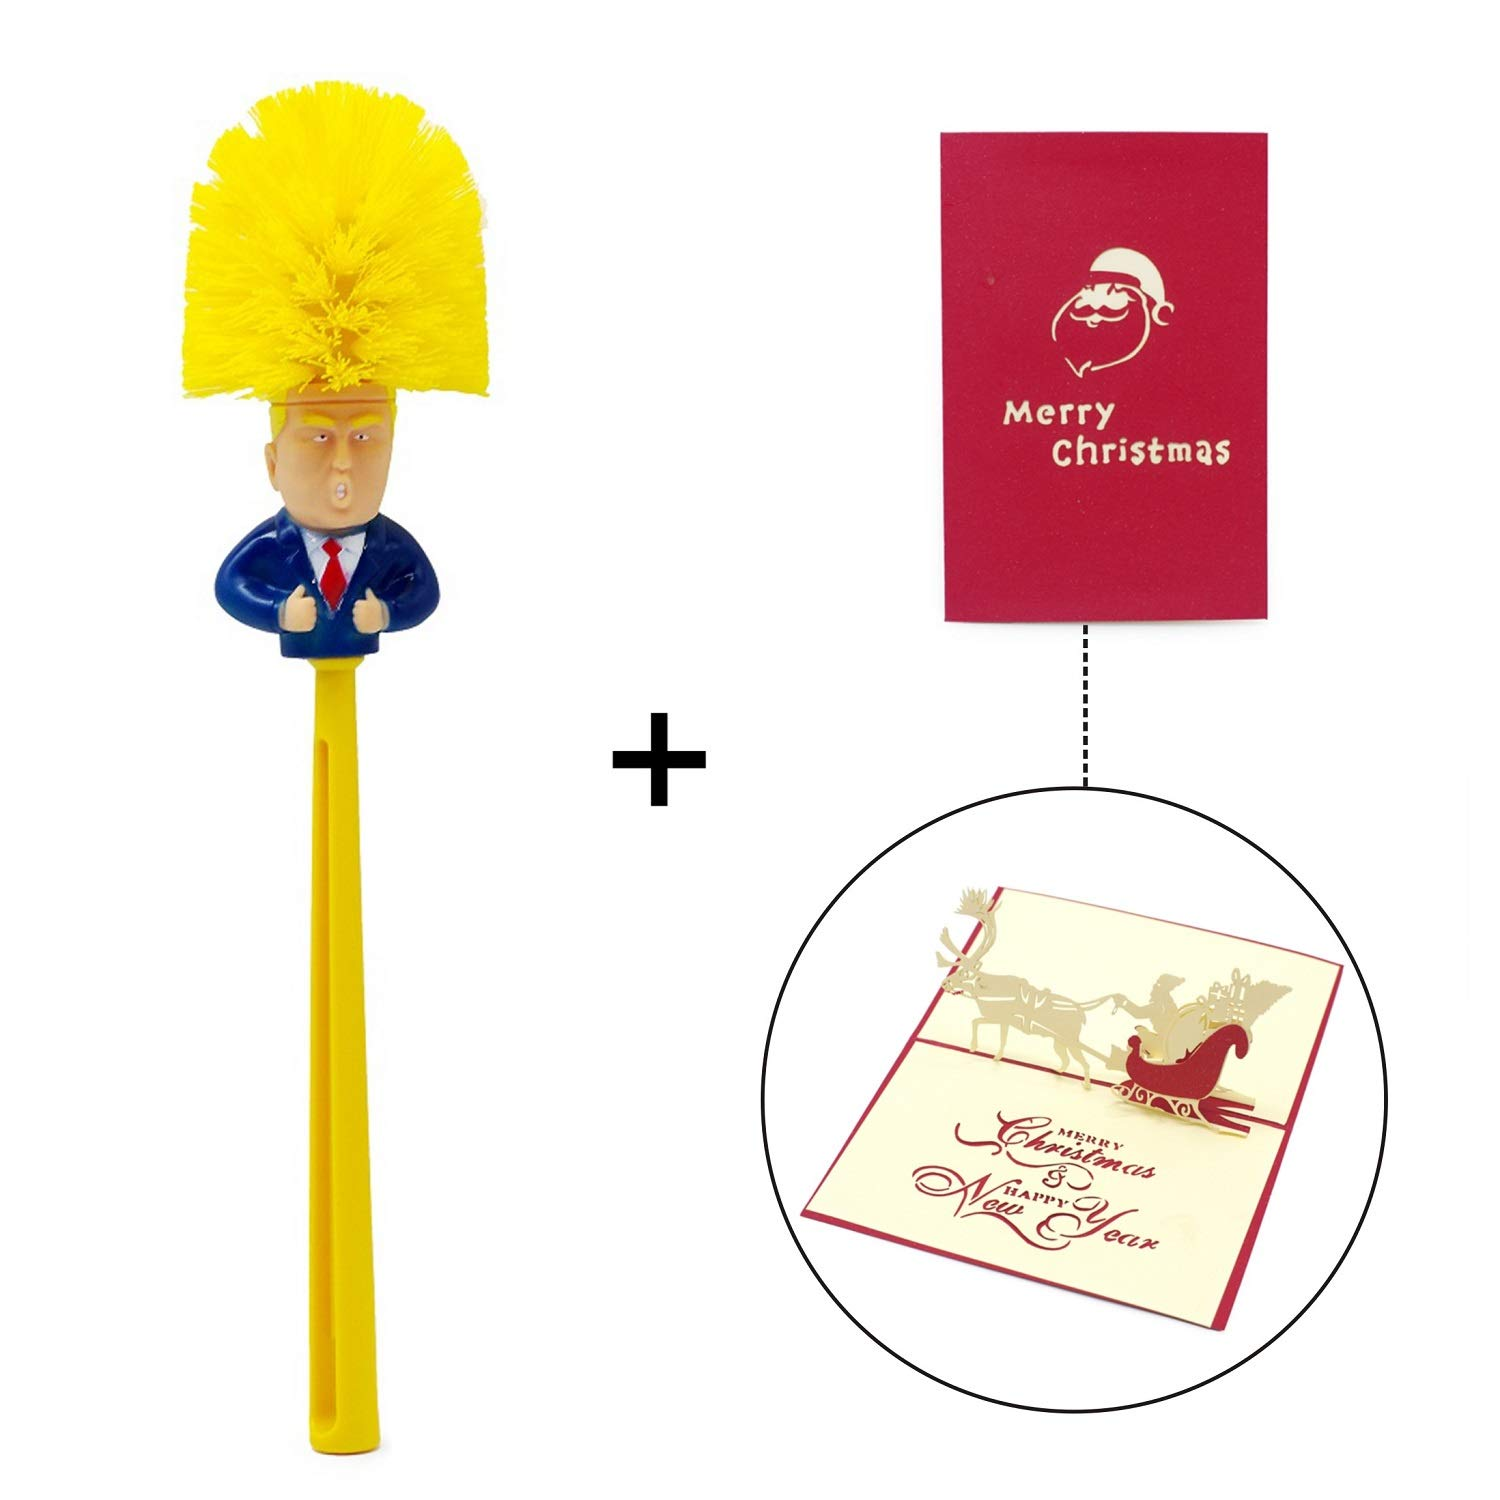 Bravo Sport Donald Trump Toilet Brush, Make Toilet Great Again, Novelty Political Gag Gift